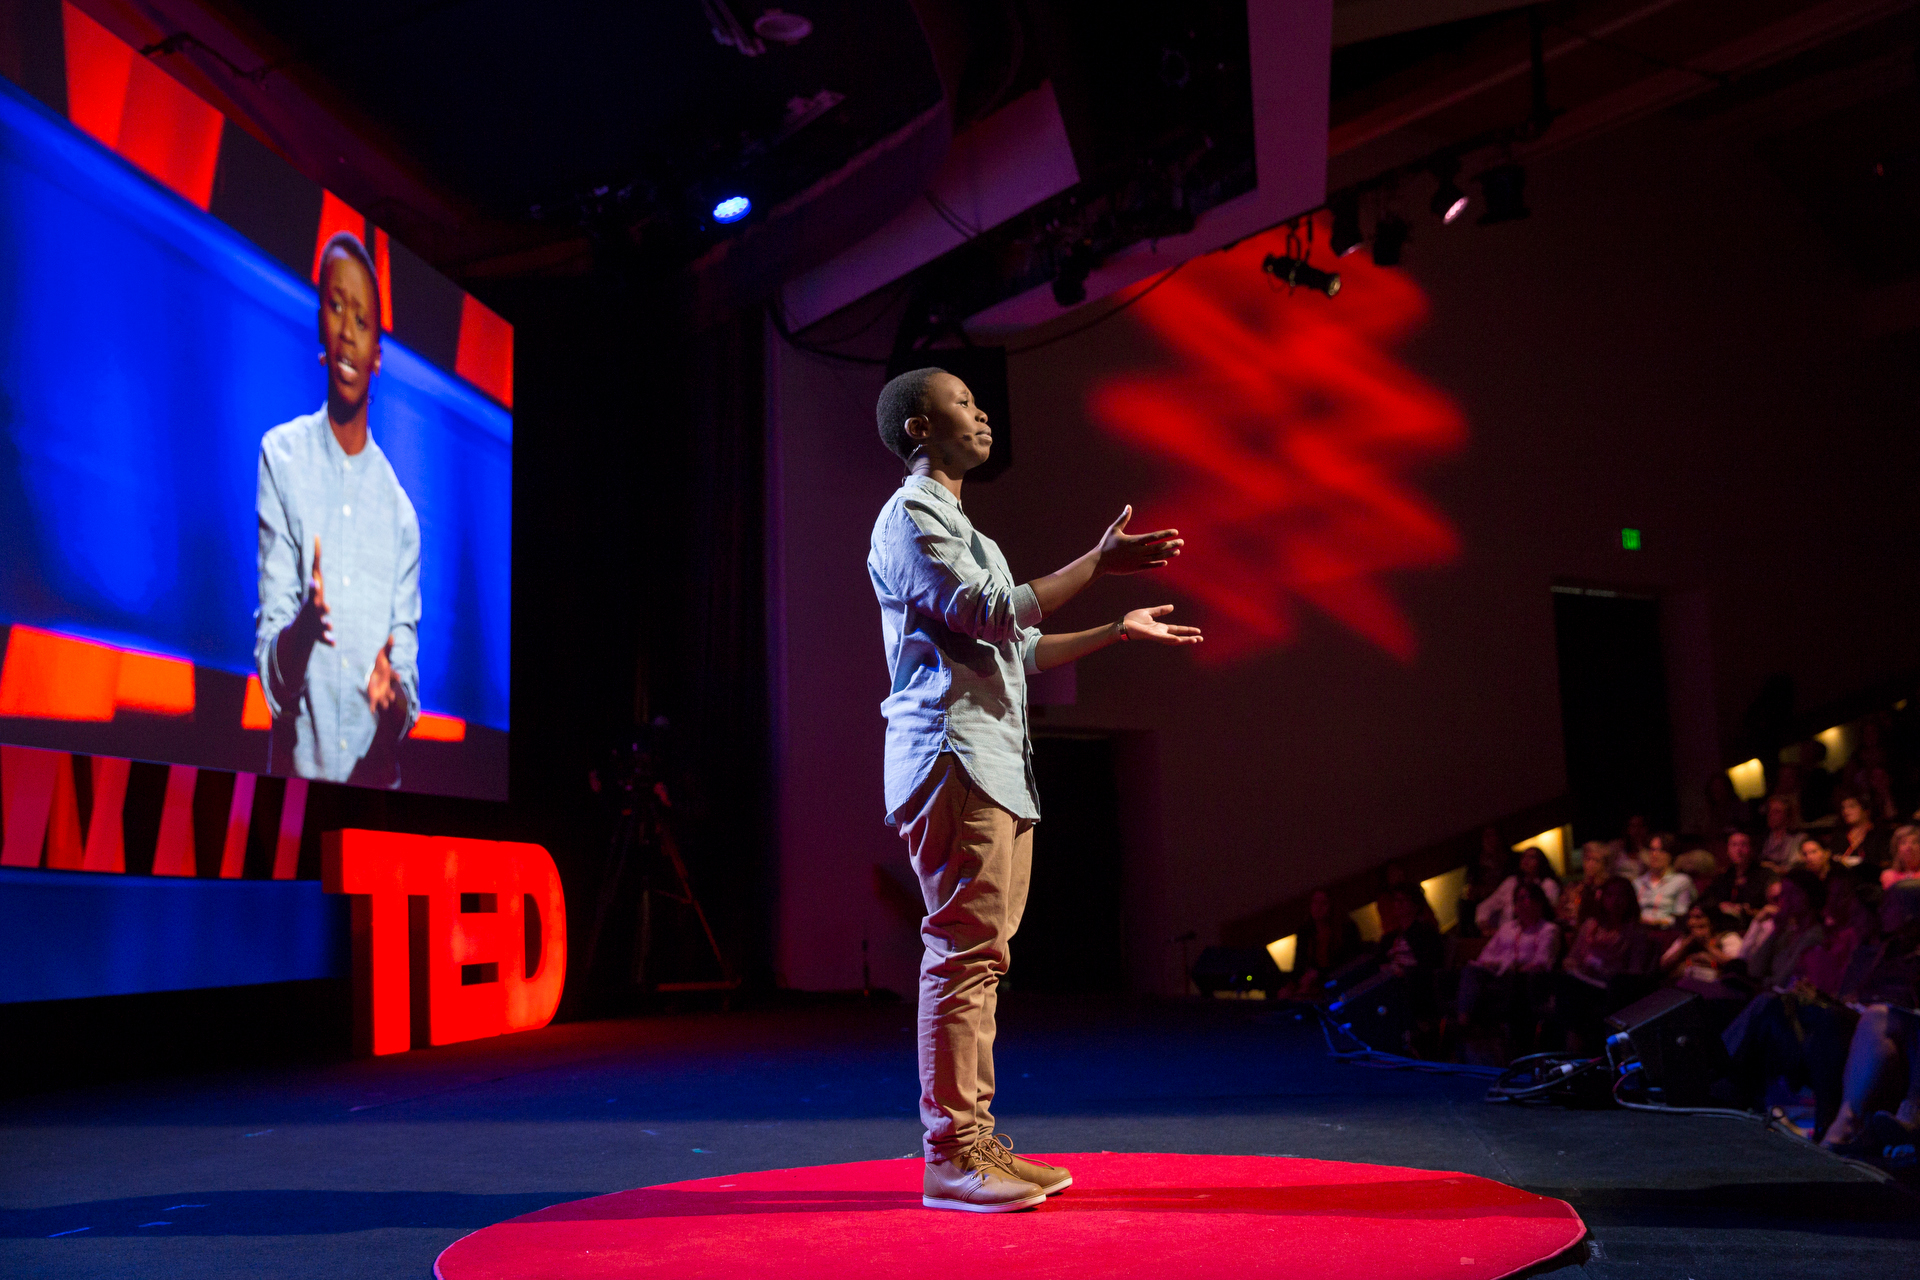 Lerato Mokobe speaks at TEDWomen2015 - Momentum, Session 2, May 28, 2015, Monterey Conference Center, Monterey, California, USA. Photo: Marla Aufmuth/TED